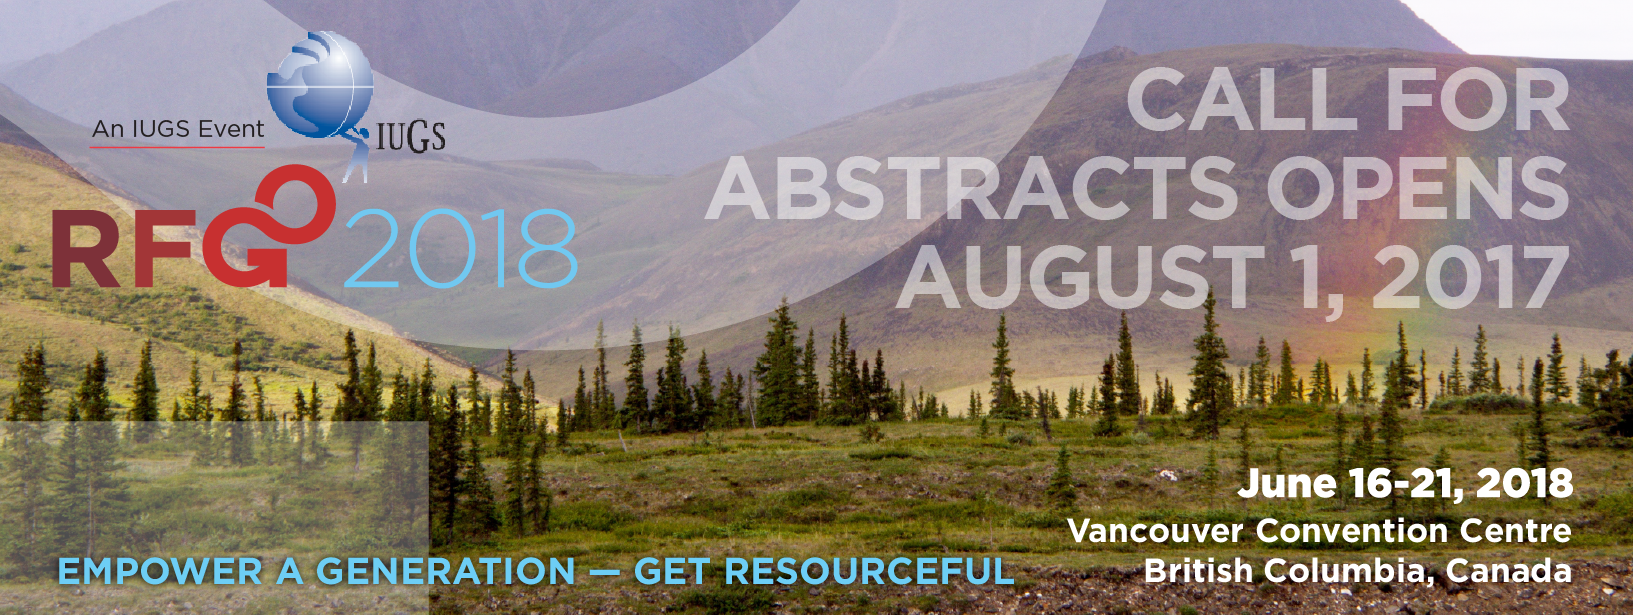 Call for Abstracts opens August 1, 2017